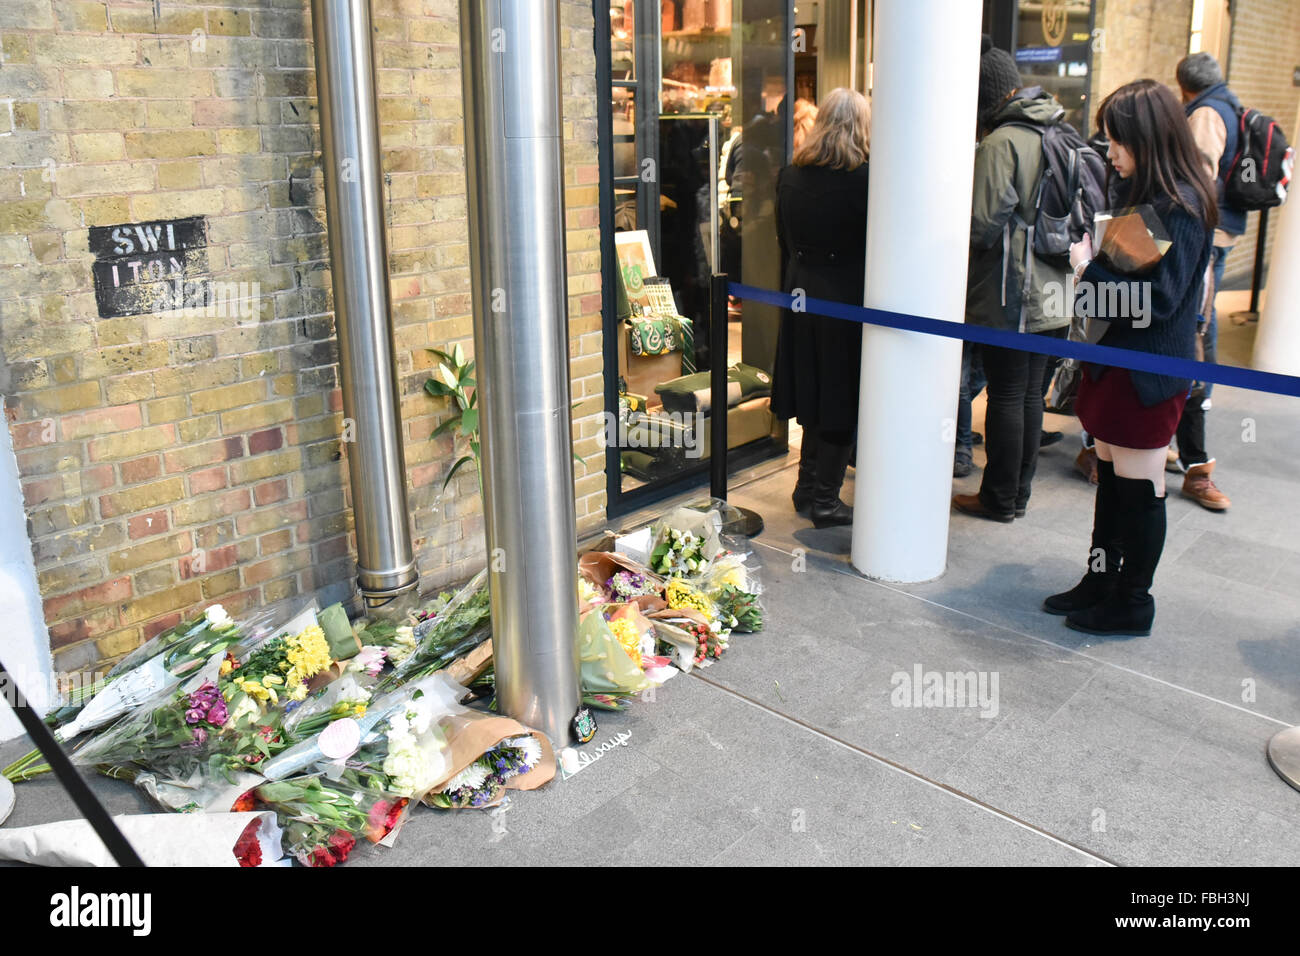 Kings Cross Station, London, UK. 16th January 2016. Flowers and tributes for Alan Rickman are now next to the Harry - Stock Image